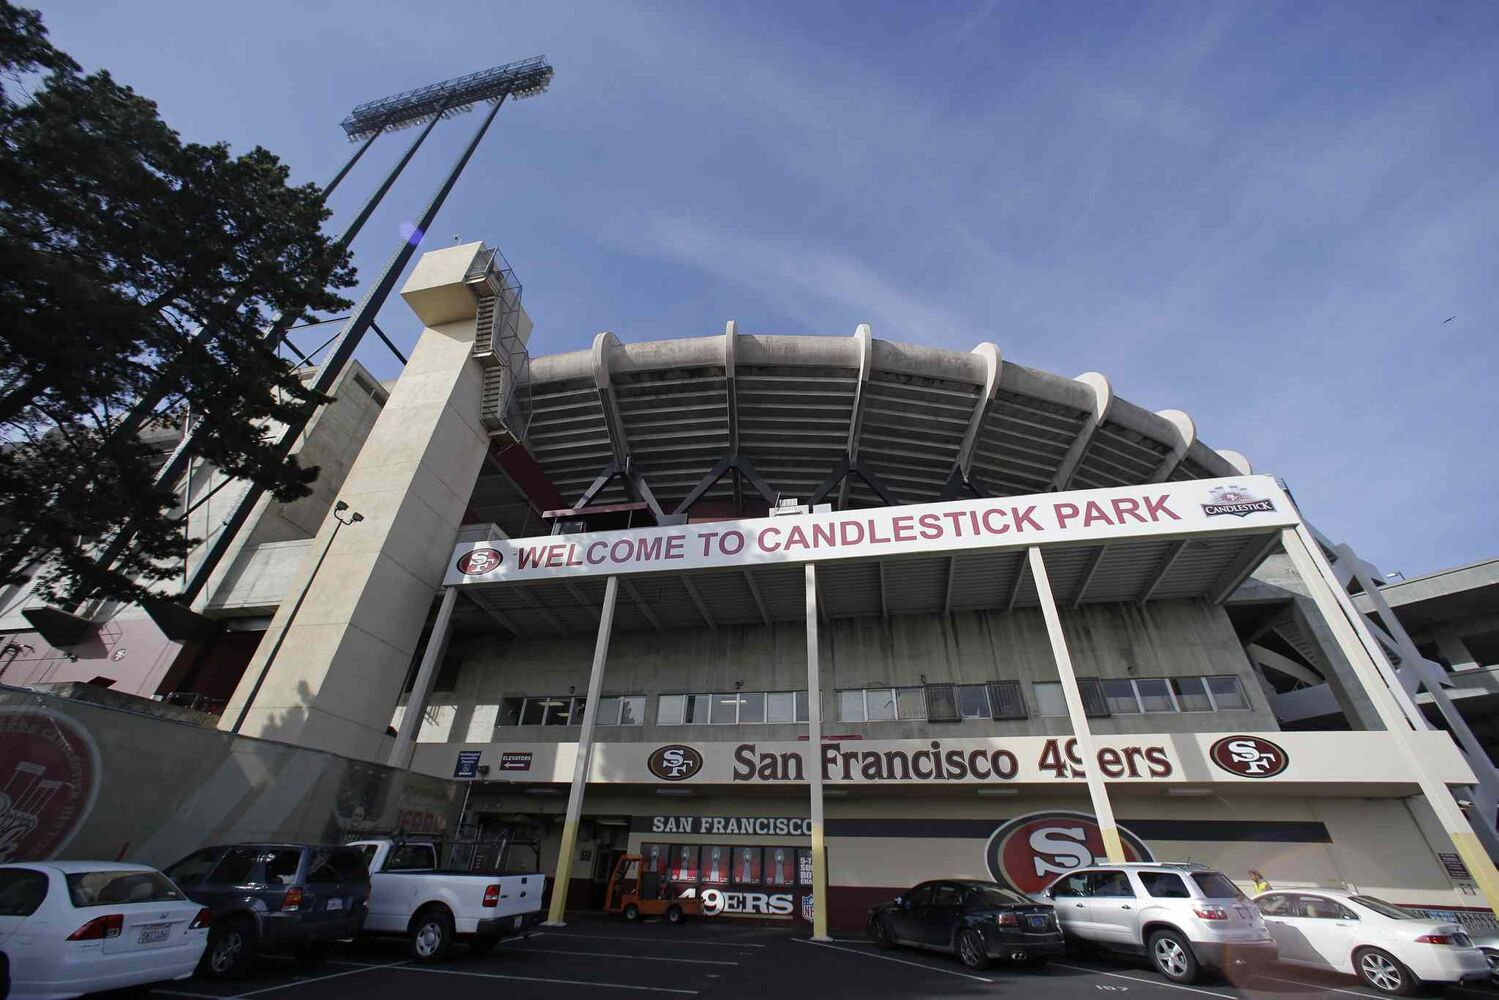 The players' entrance at Candlestick Park in San Francisco is seen from outside the building.